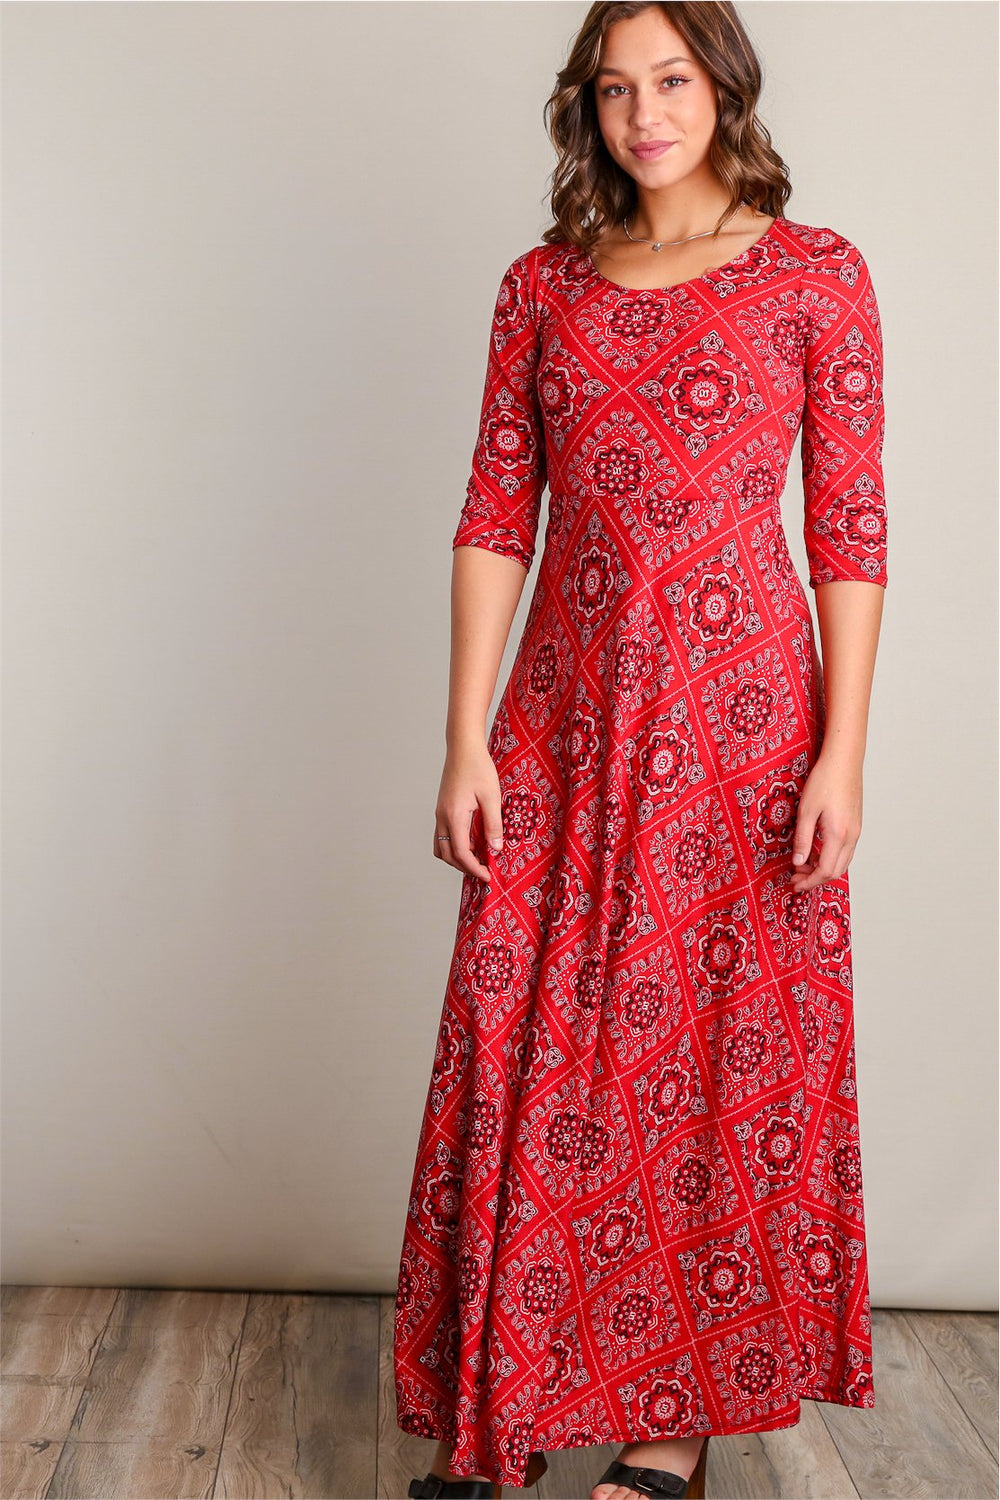 Fiona Rust Red Printed Fit & Flare Maxi Dress Siin Bees